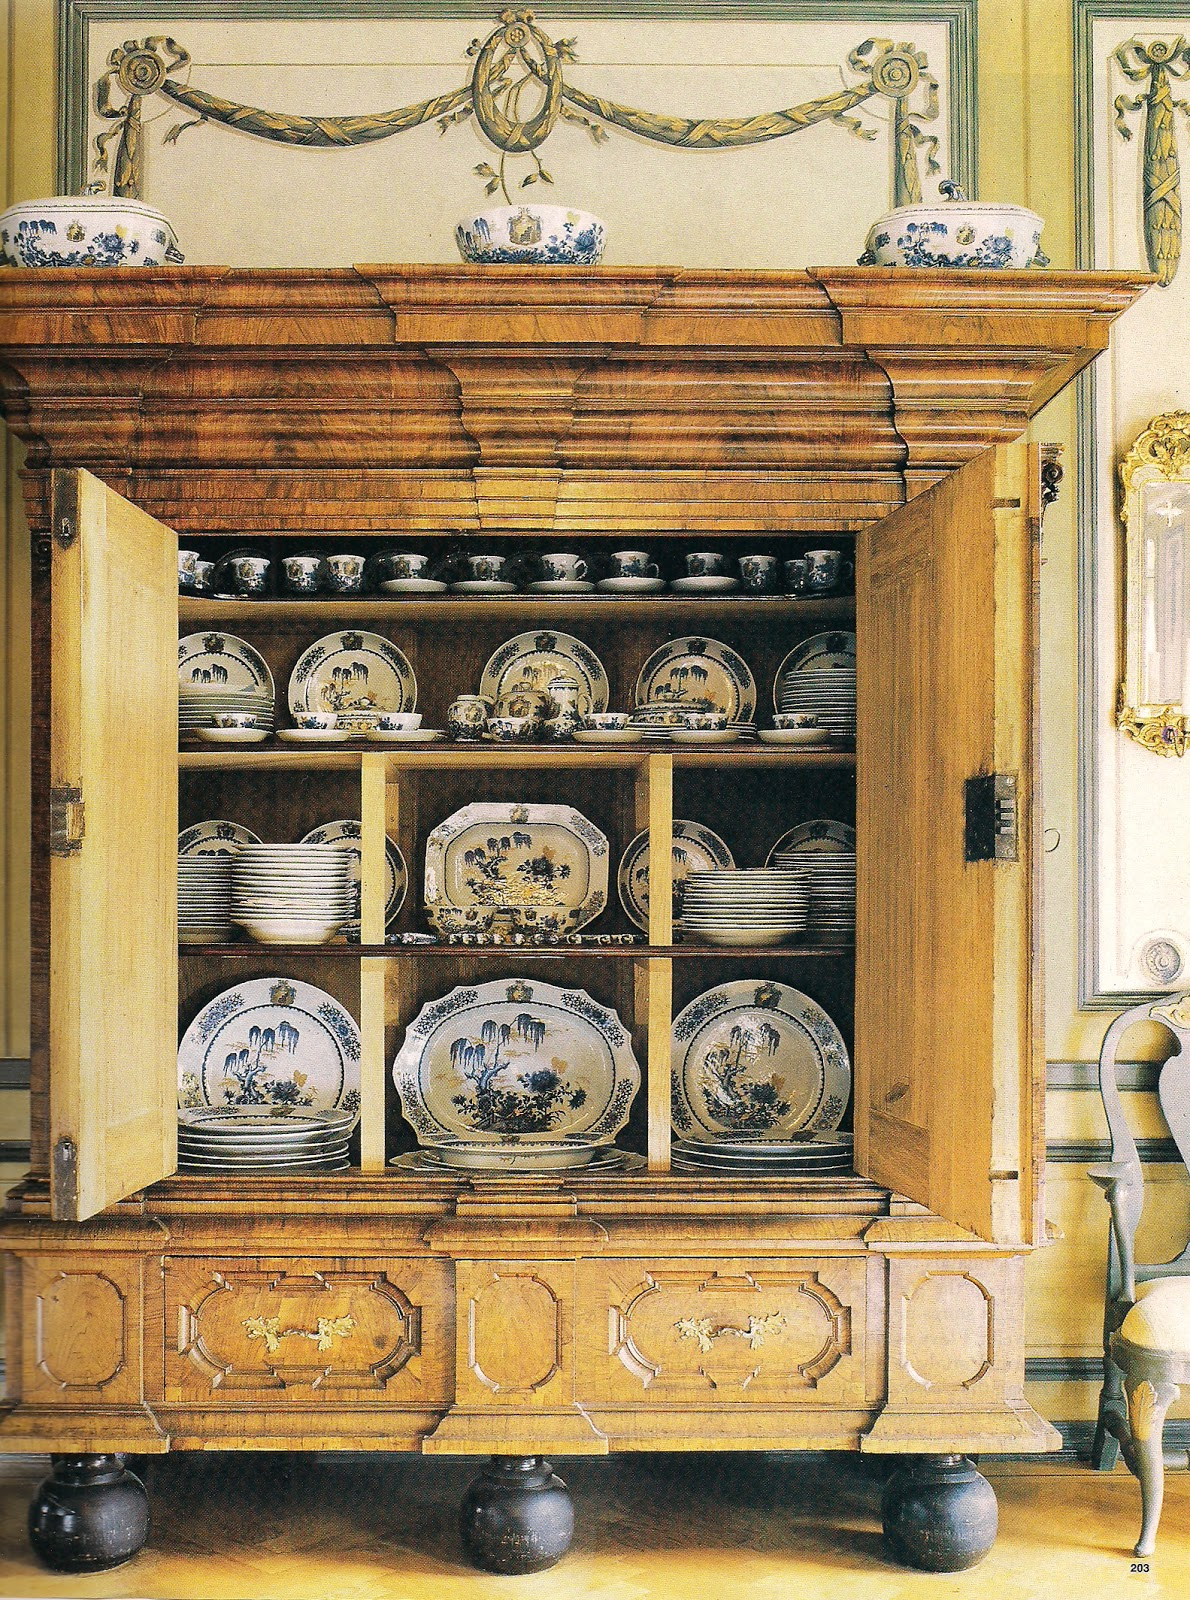 Von Lingon Porcelain Is Displayed In Another Armoire In The Dining Room.